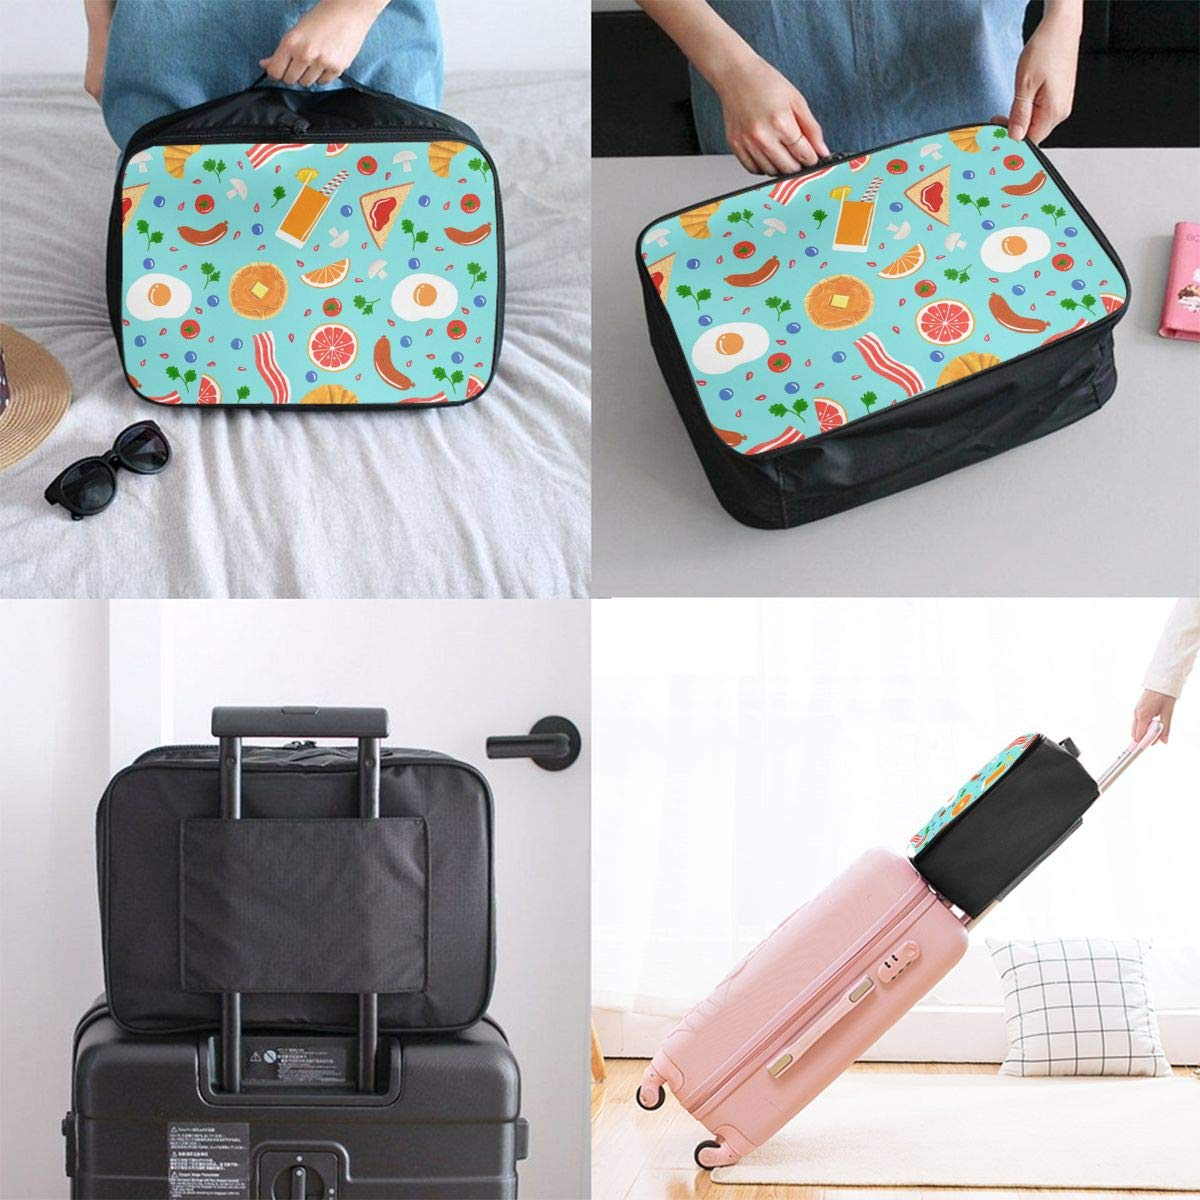 YueLJB Breakfast Cake Sausage Bacon Lightweight Large Capacity Portable Luggage Bag Travel Duffel Bag Storage Carry Luggage Duffle Tote Bag